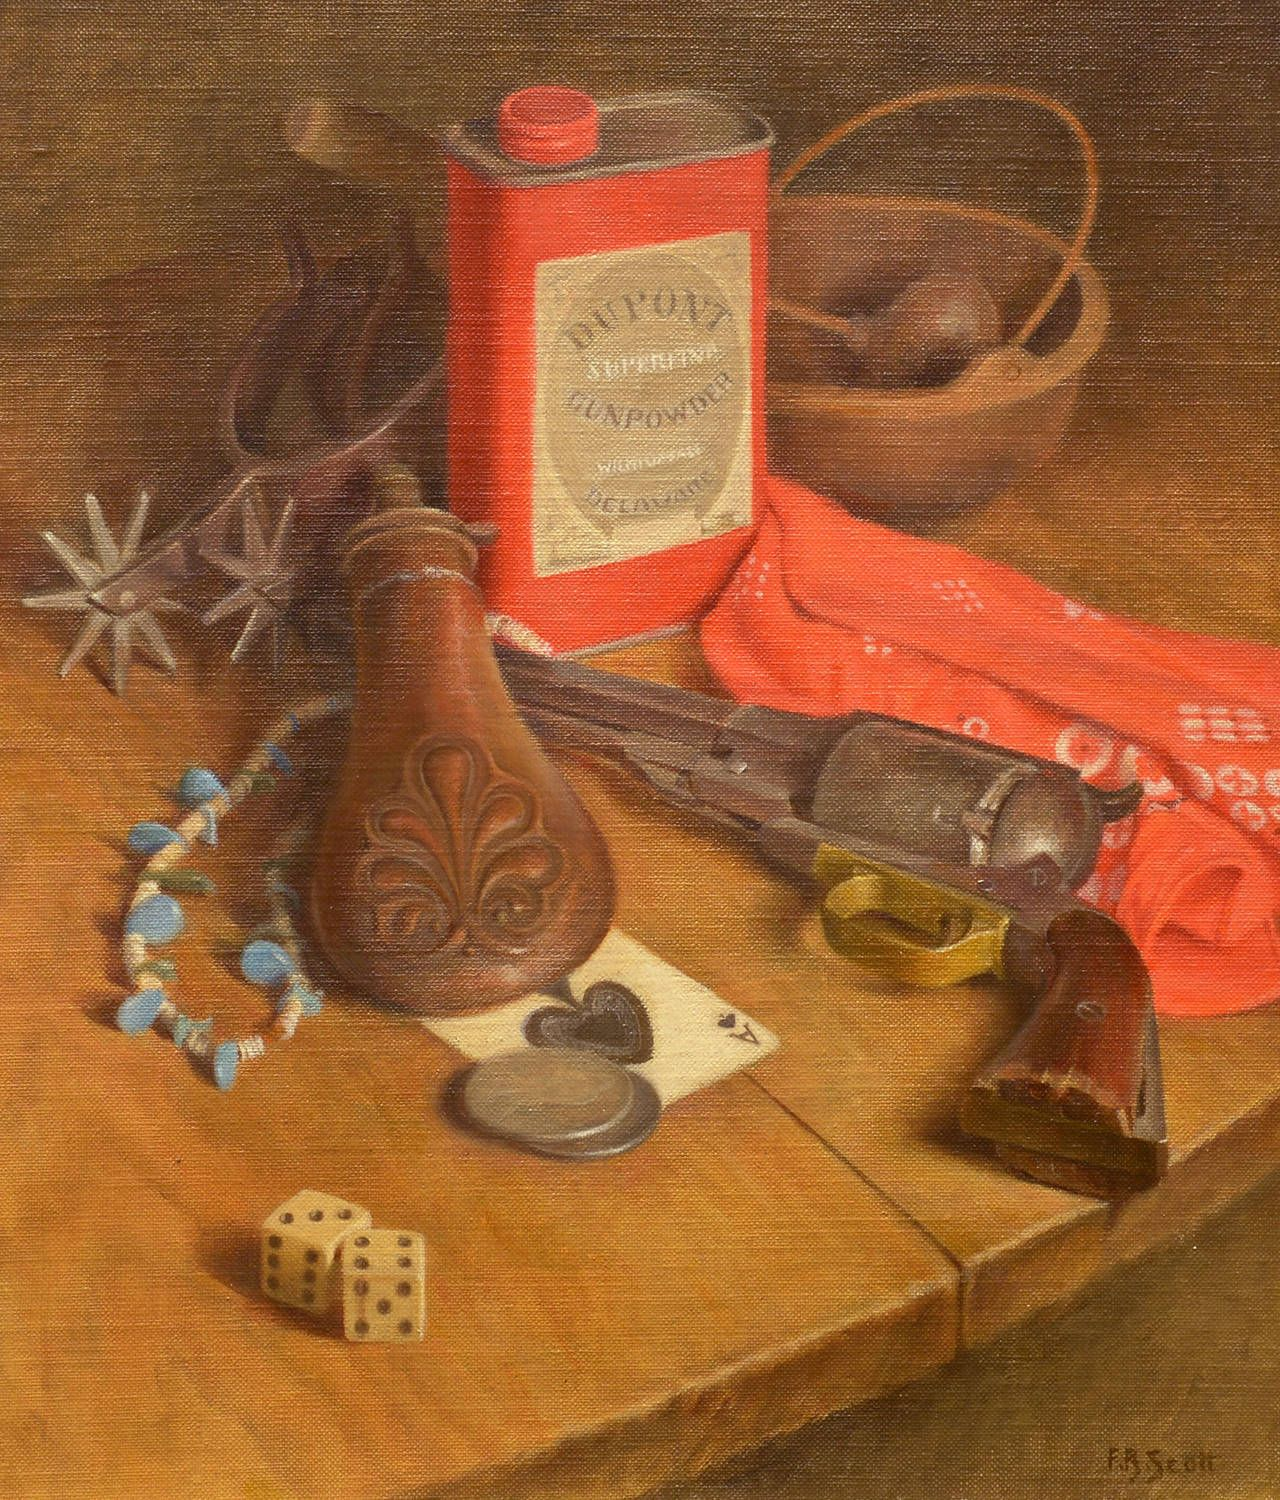 Flavia Bensing Scott - Western Still Life For Sale at 1stdibs